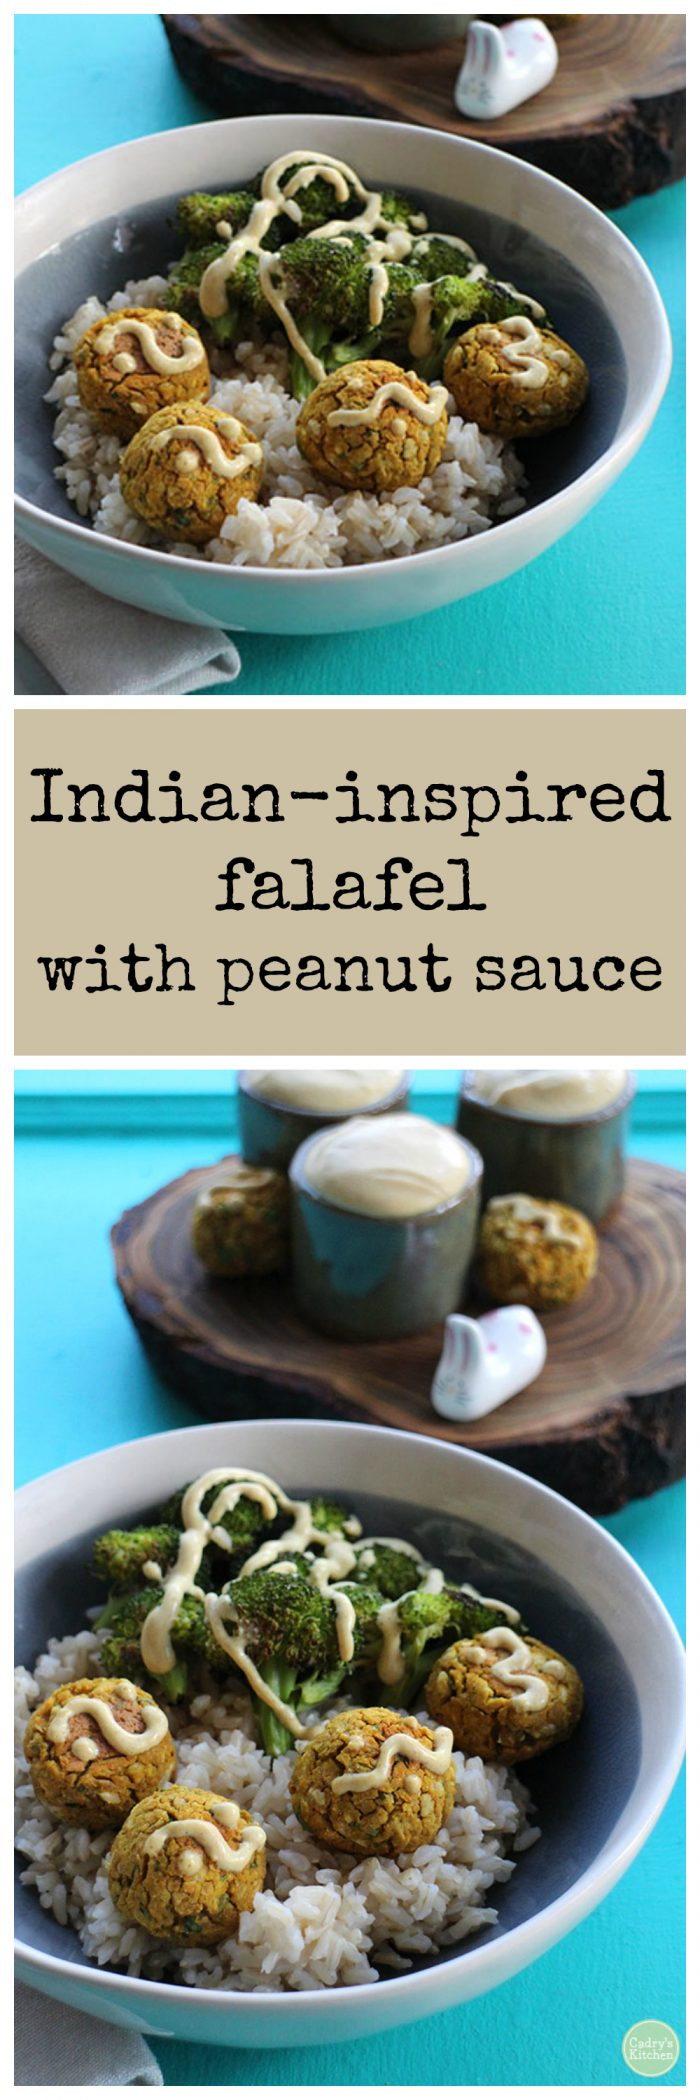 Indian-inspired falafel with peanut sauce and roasted broccoli | cadryskitchen.com #vegan